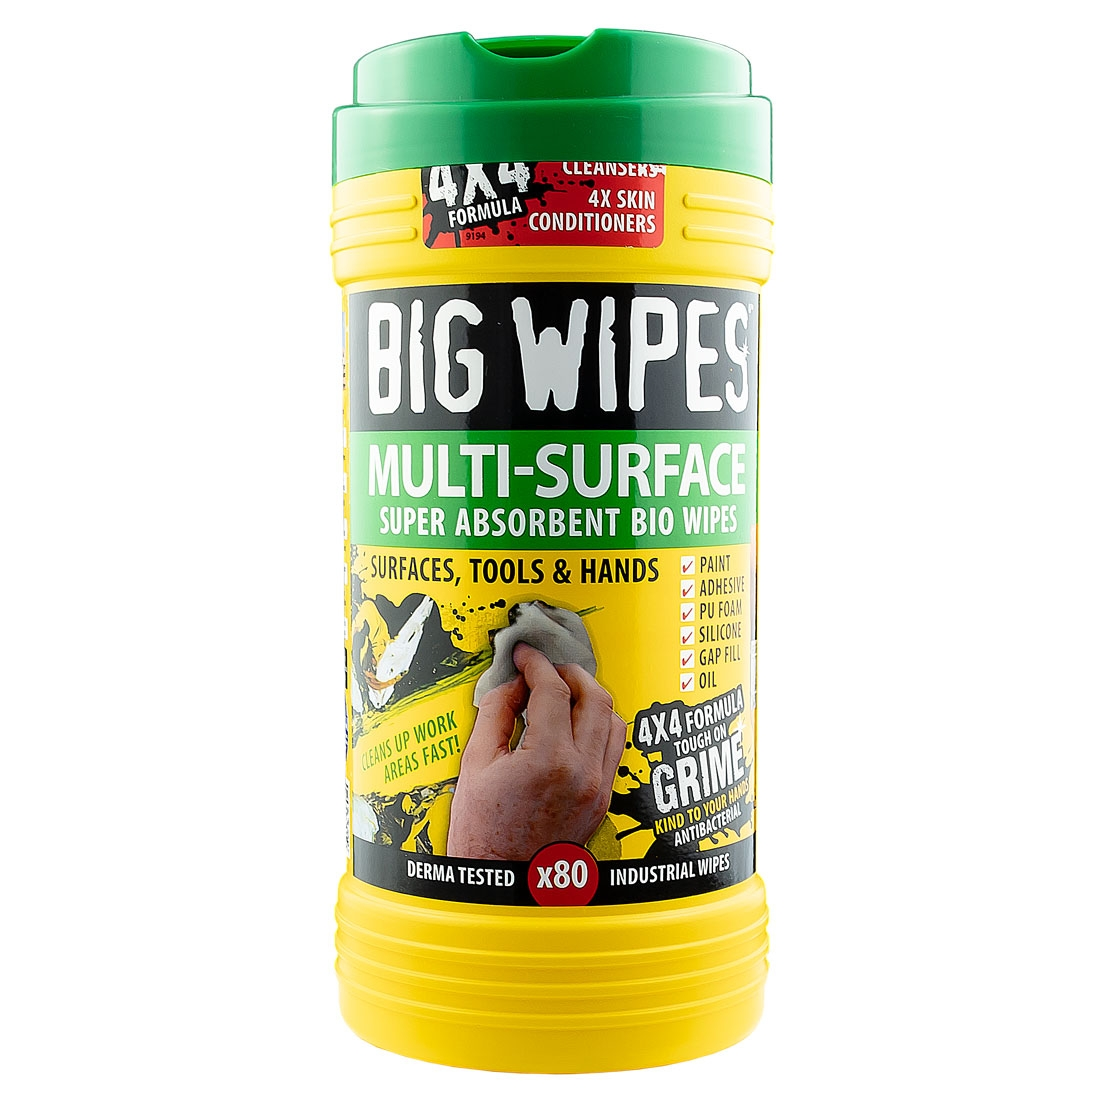 BIG WIPES Multi-Surface 4x4 Wipes - Green Top